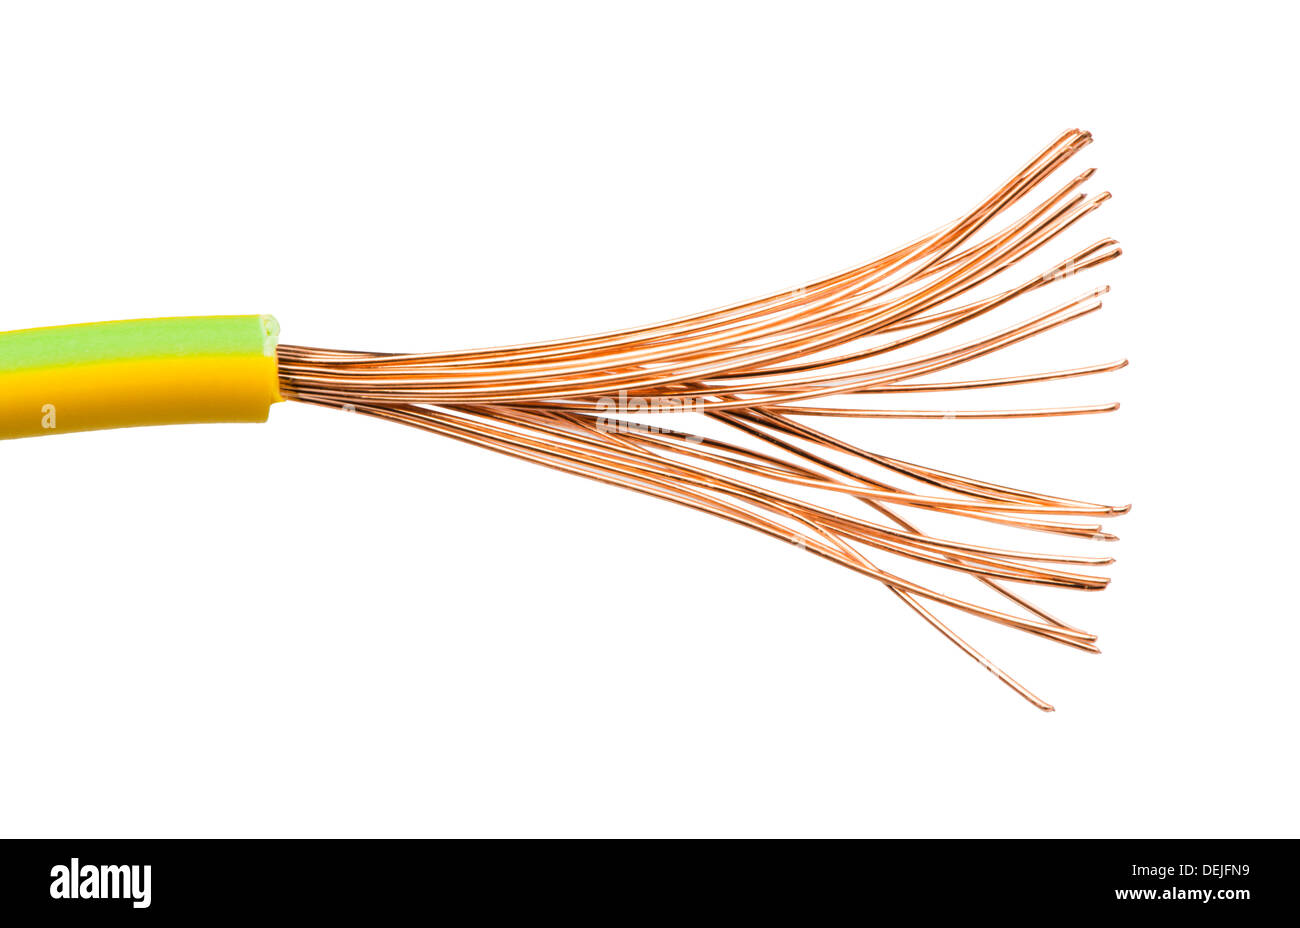 Exposed Wiring Stock Photos & Exposed Wiring Stock Images - Alamy